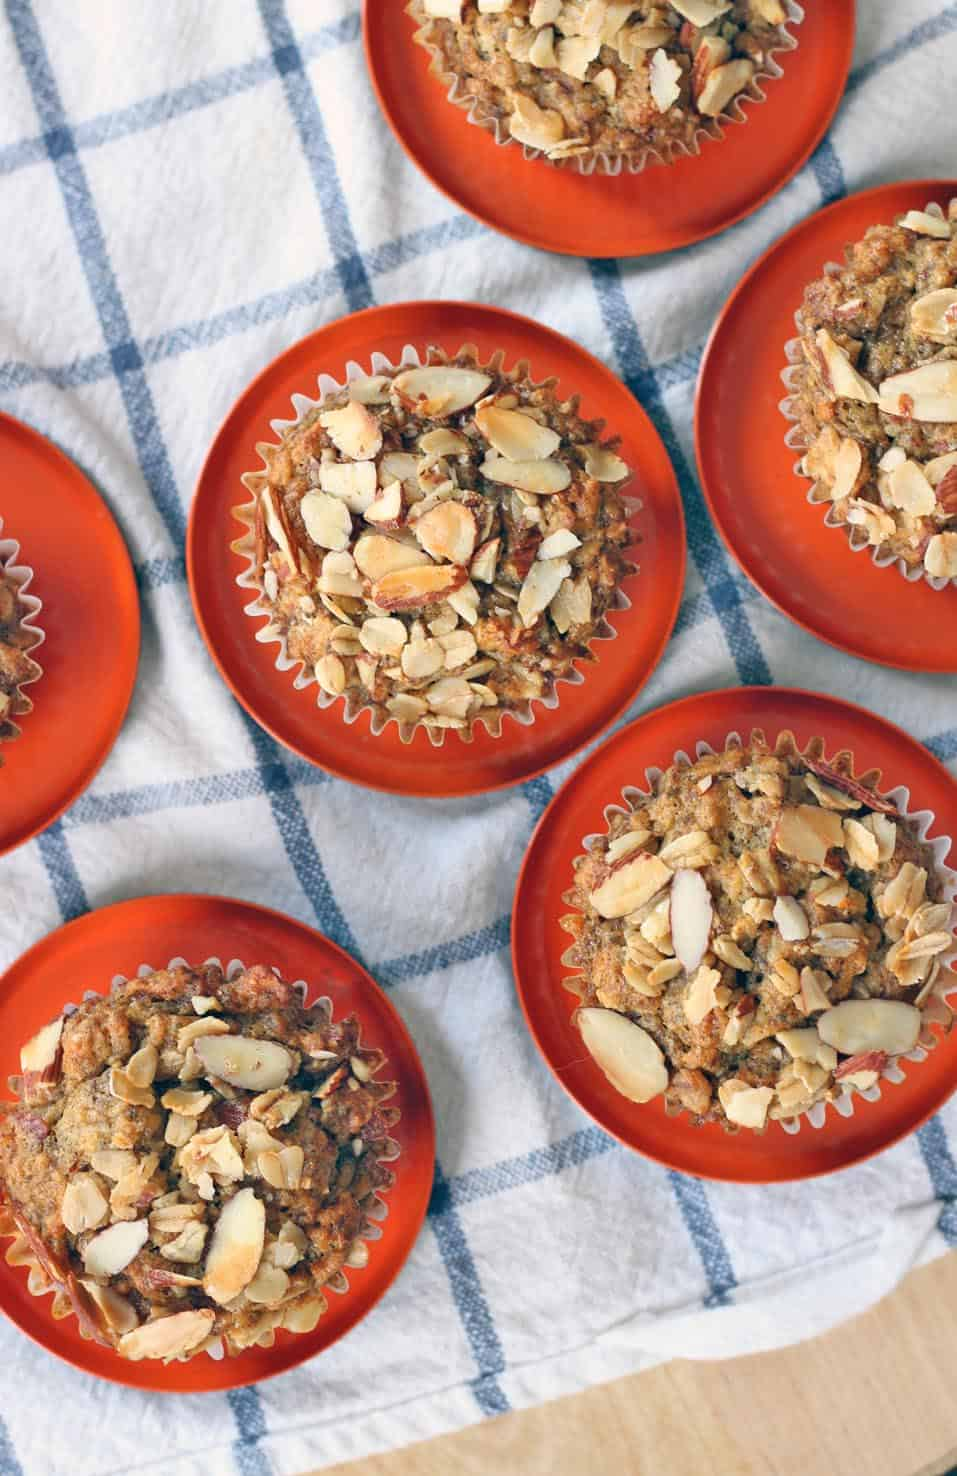 Bird's eye view of Maple Banana Oat and Nut Muffins on individual red saucers, all on a blue and white checkered cloth.